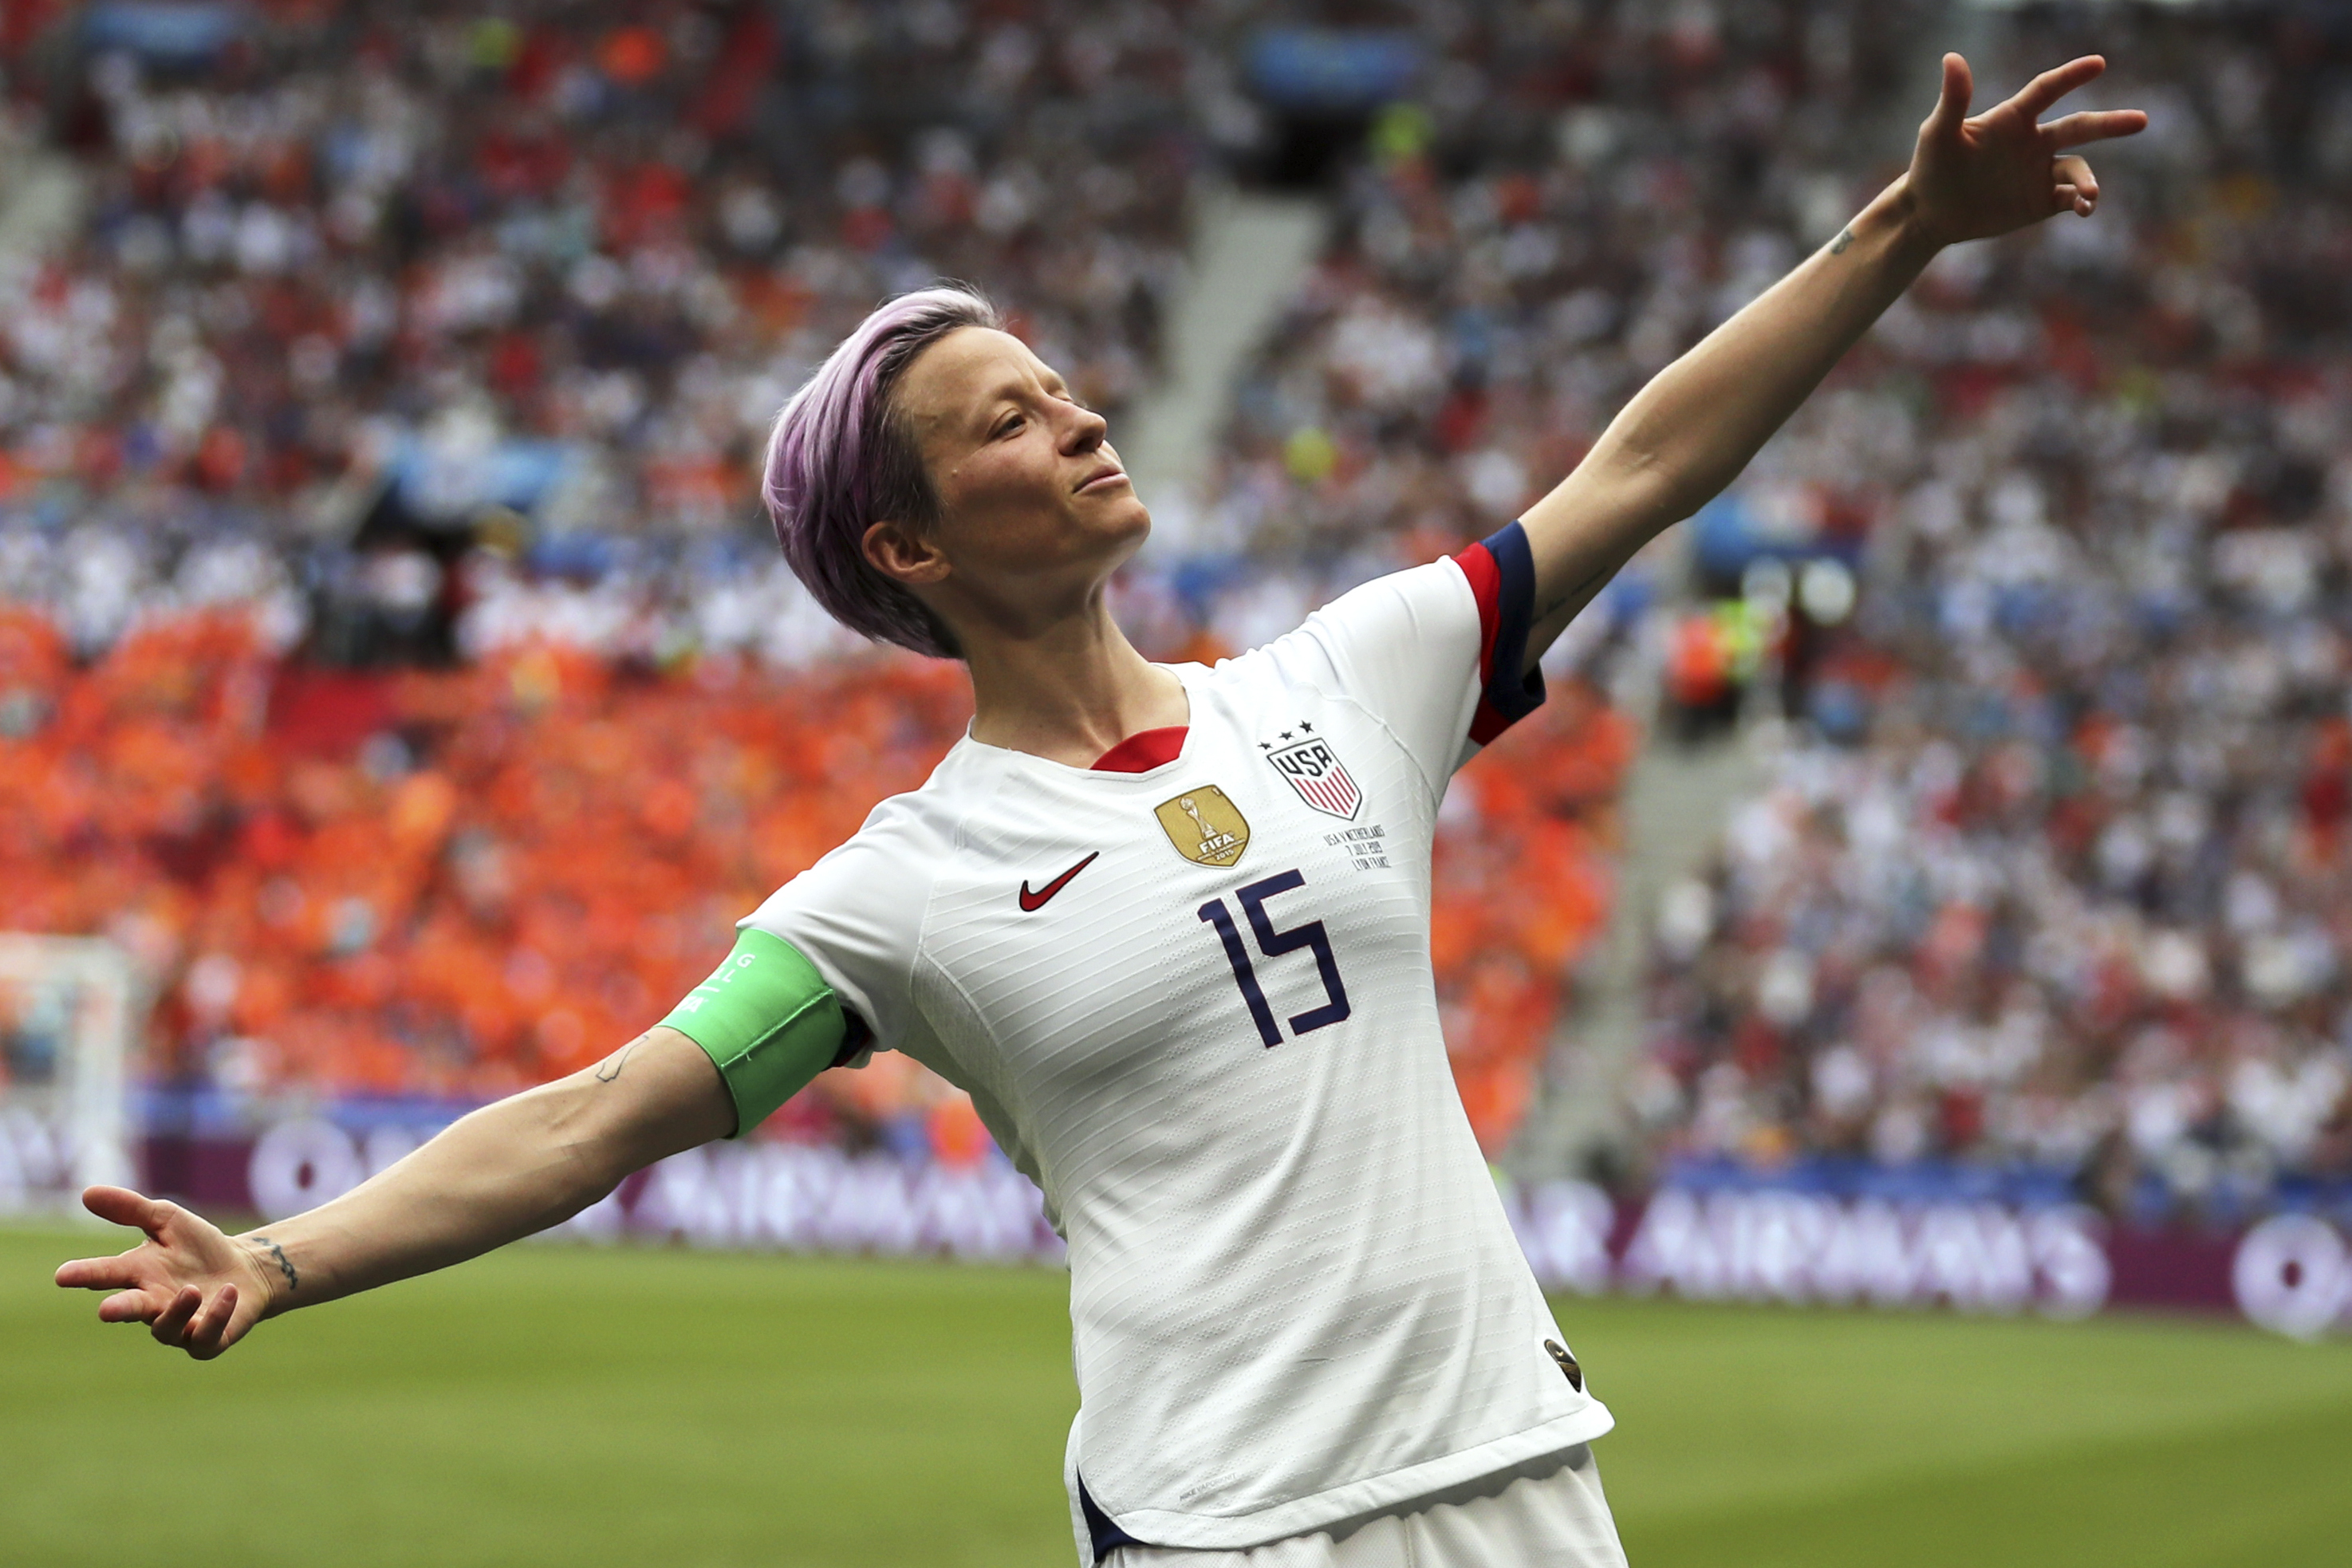 Usa Vs Haiti Women S Soccer 2020 Olympic Qualifying Live Stream And Preview Bleacher Report Latest News Videos And Highlights